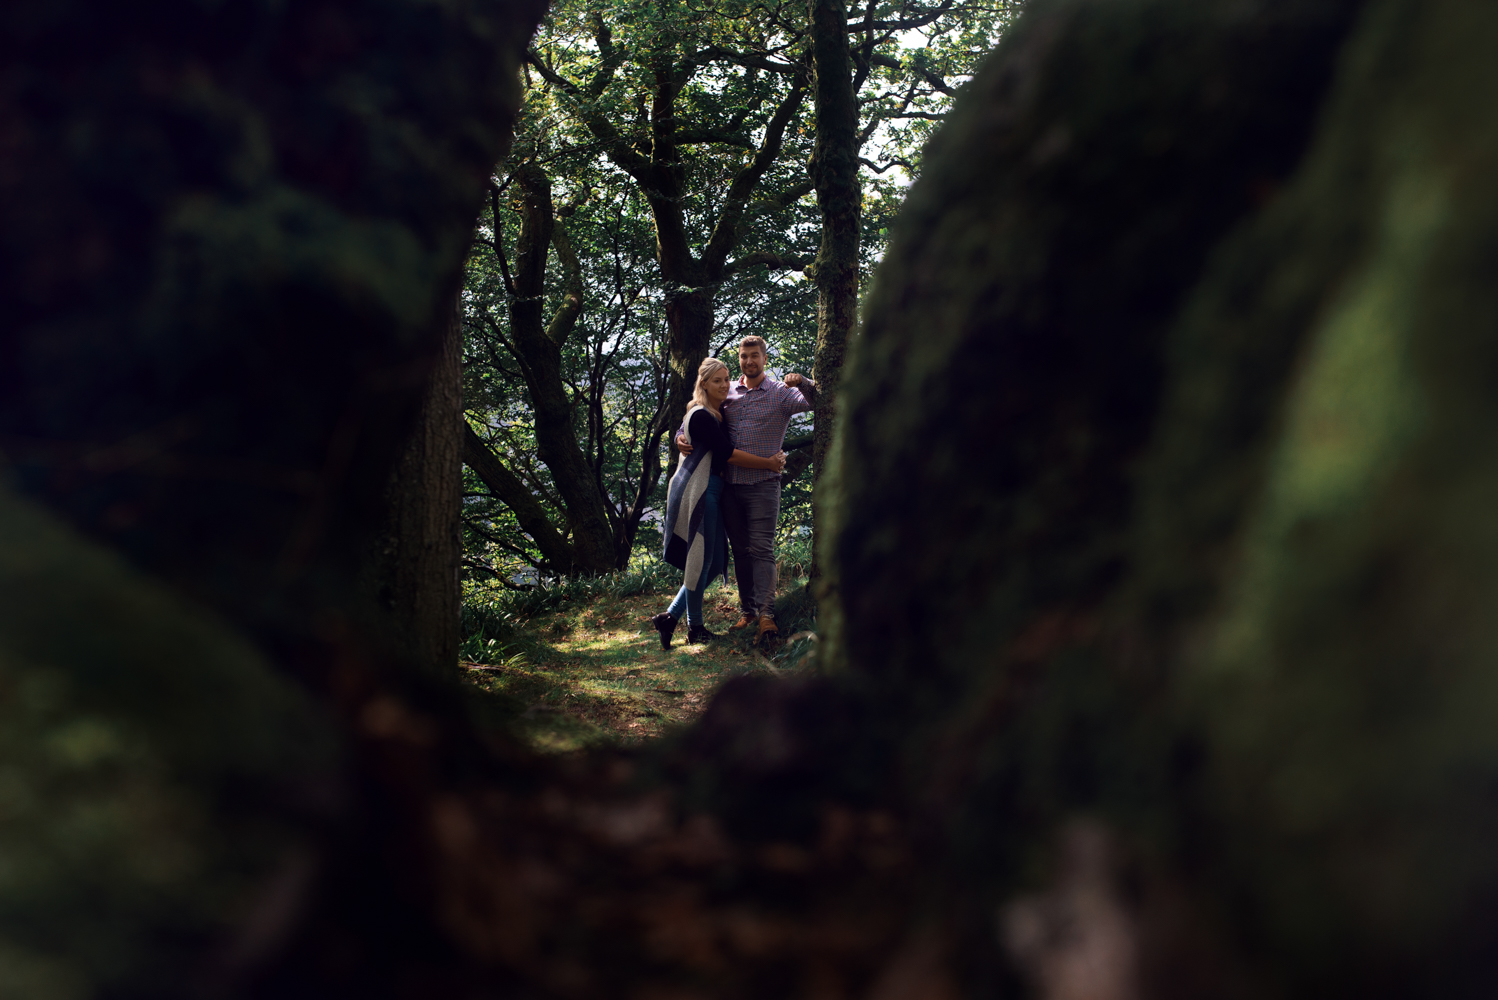 Pre shoot - A couple standing in the woods near Derwent water in the Lake District